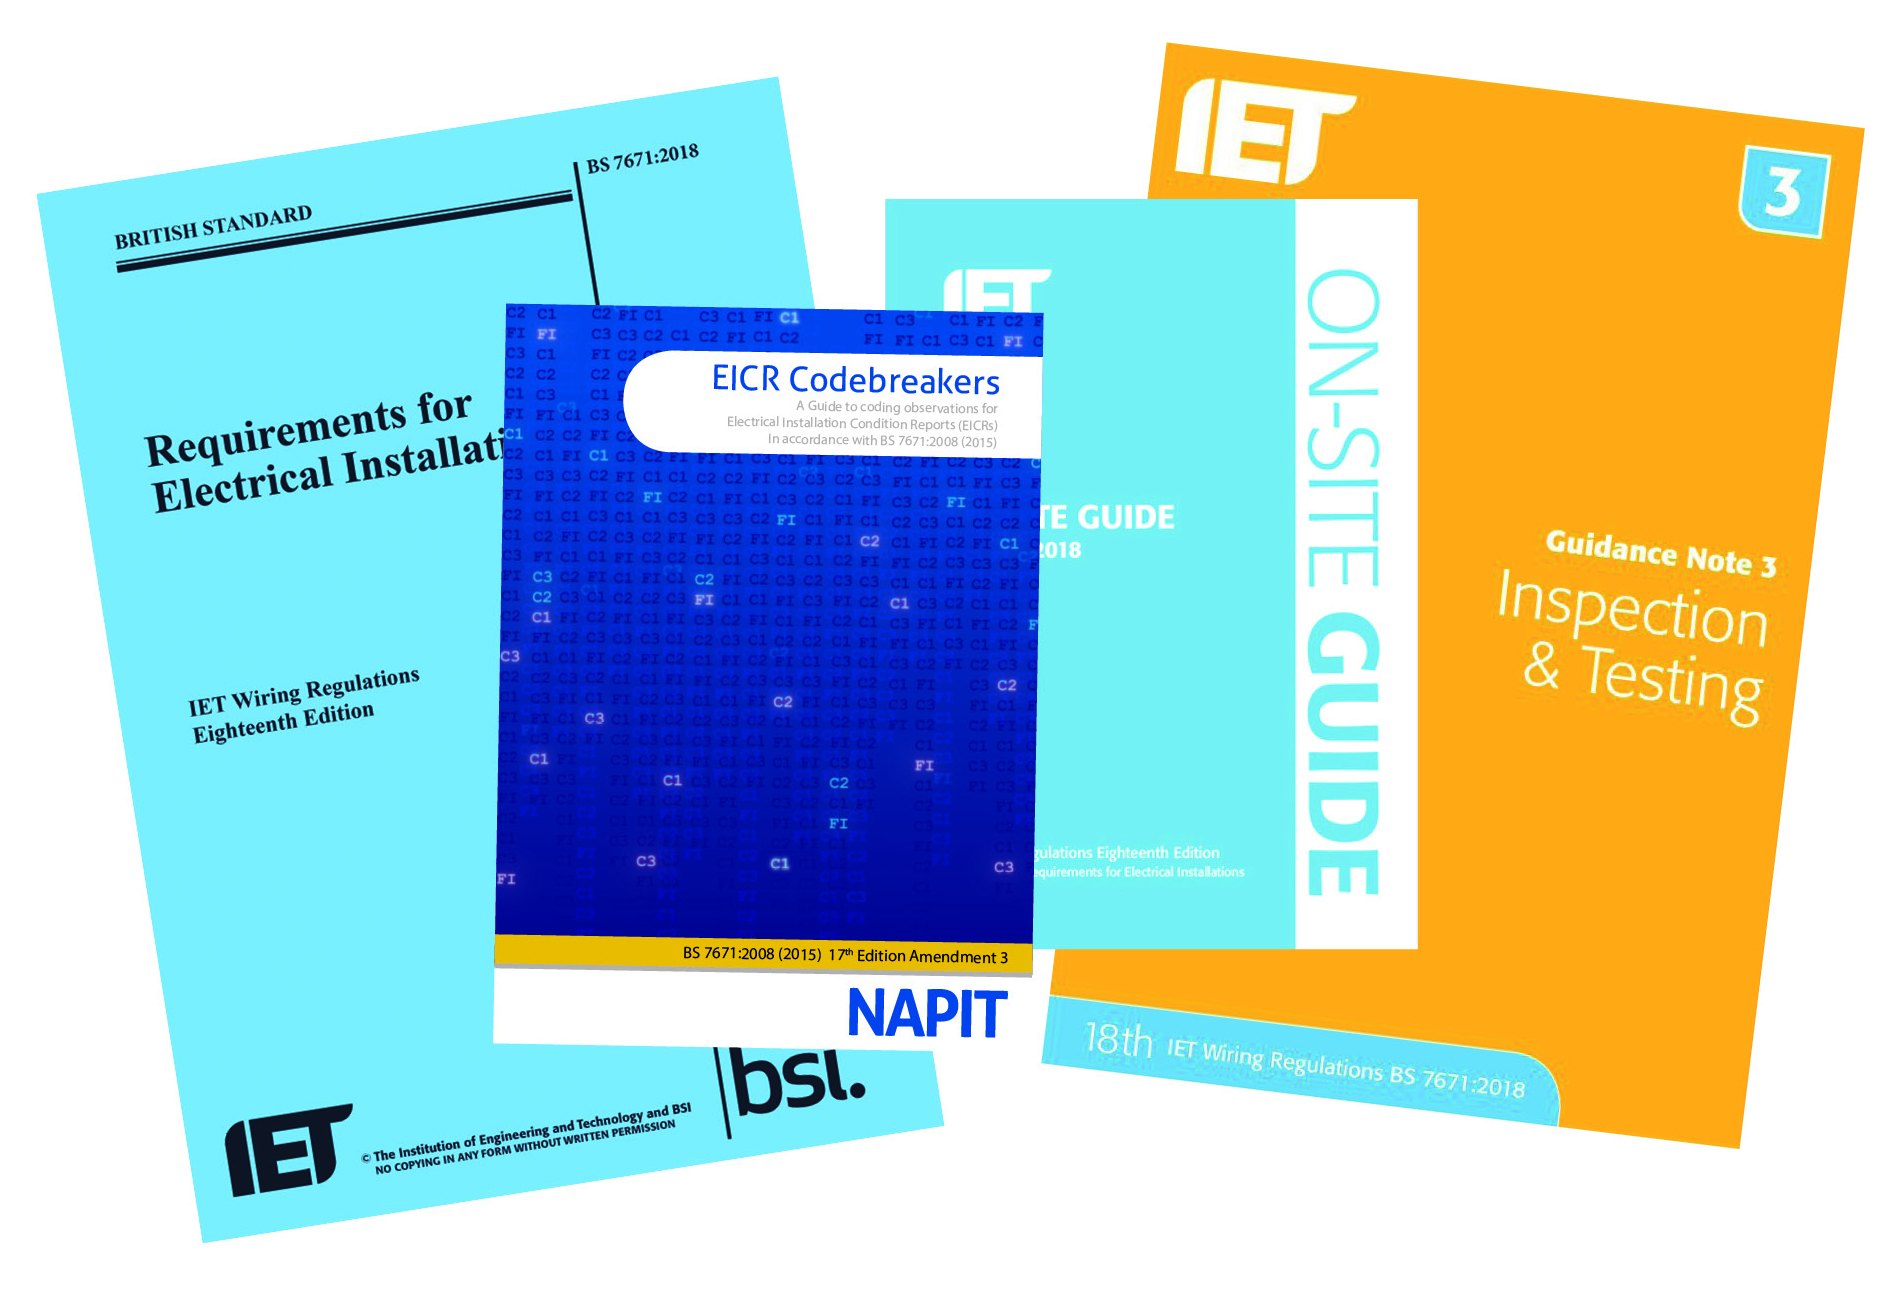 napit offers pre-orders of 18th edition